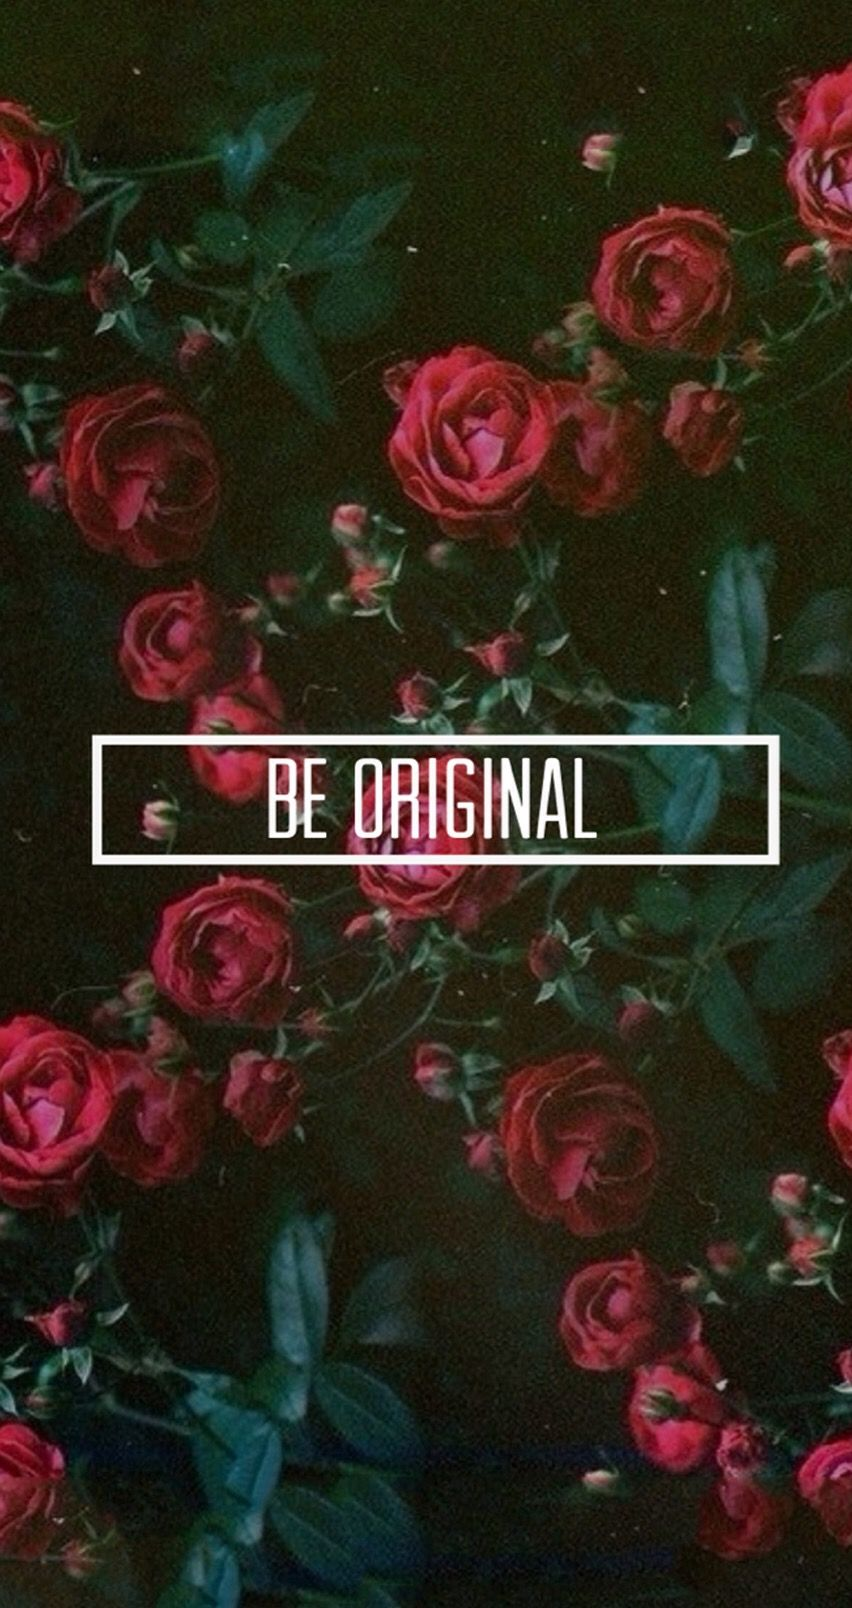 And Be Yourself